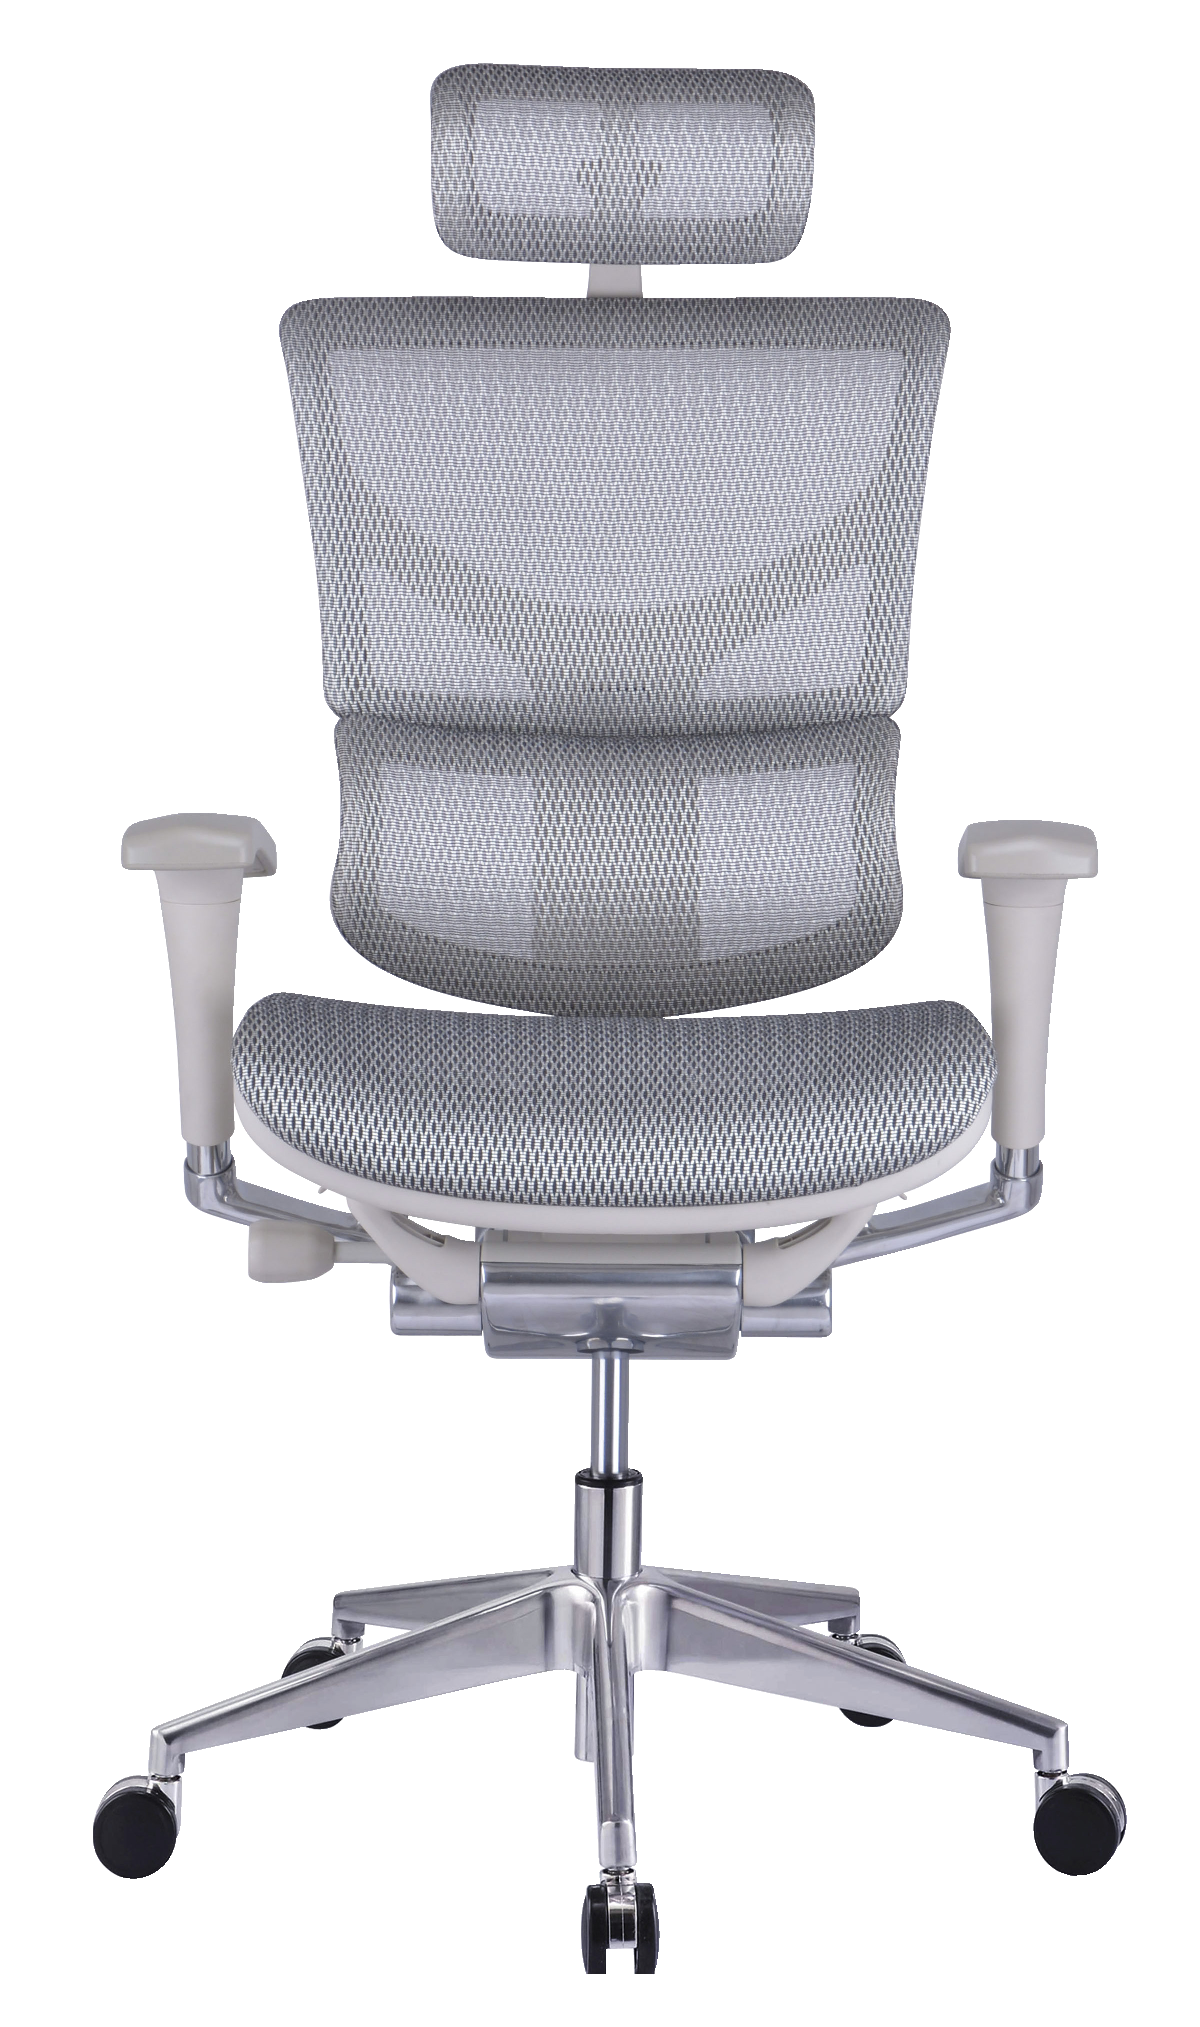 Rioli Ergonomic Chair White | More My Style | Pinterest | Kneeling ...